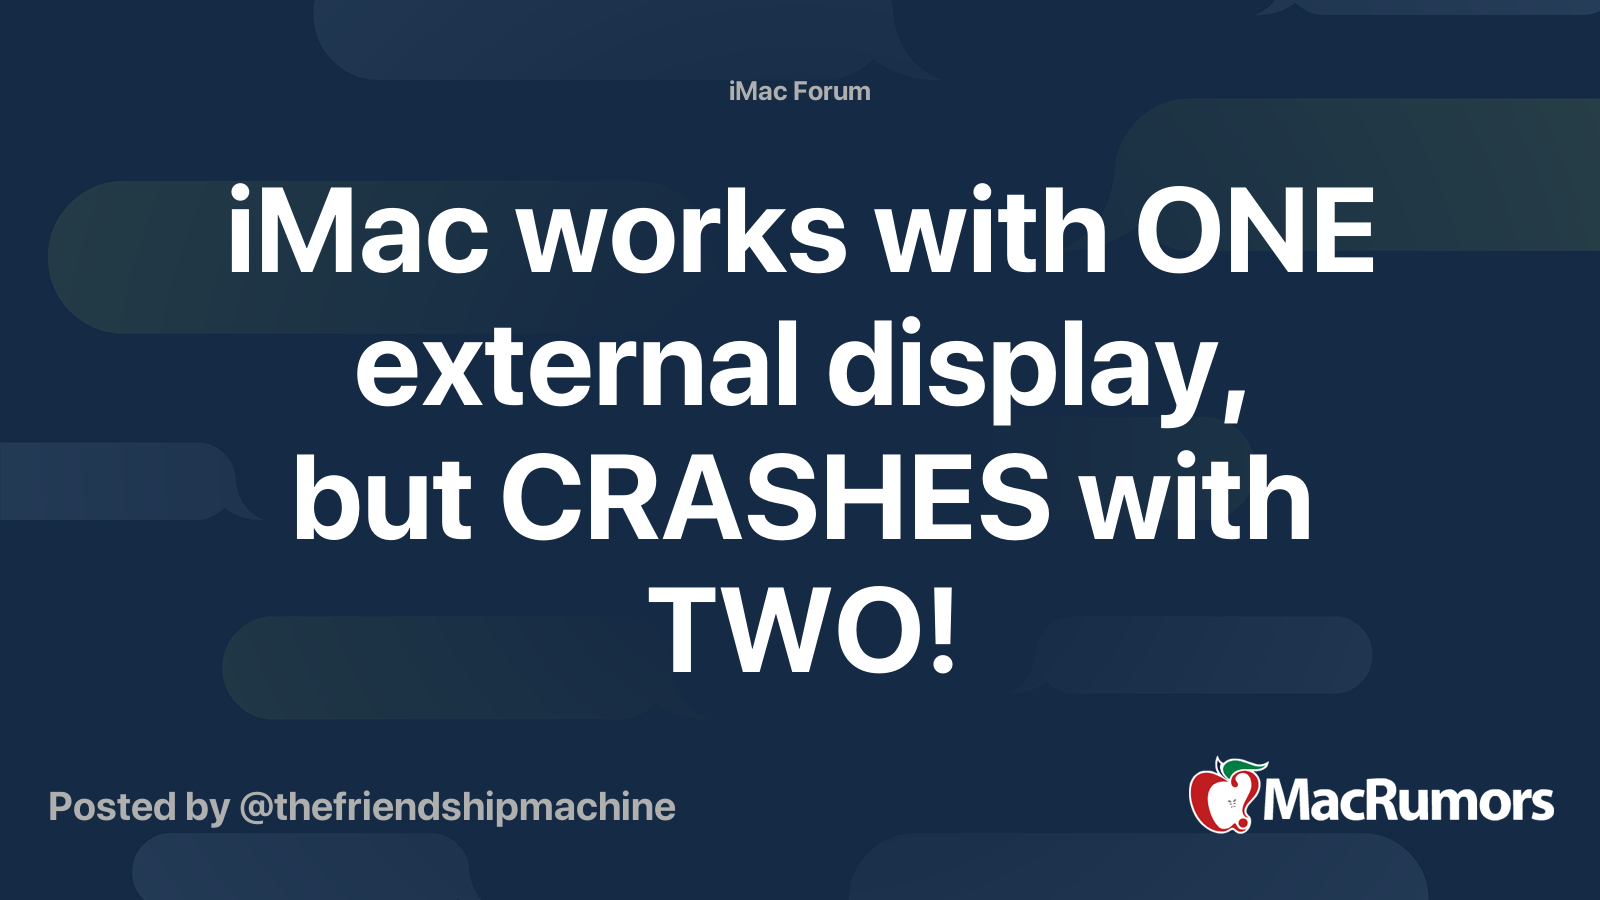 iMac works with ONE external display, but CRASHES with TWO ...